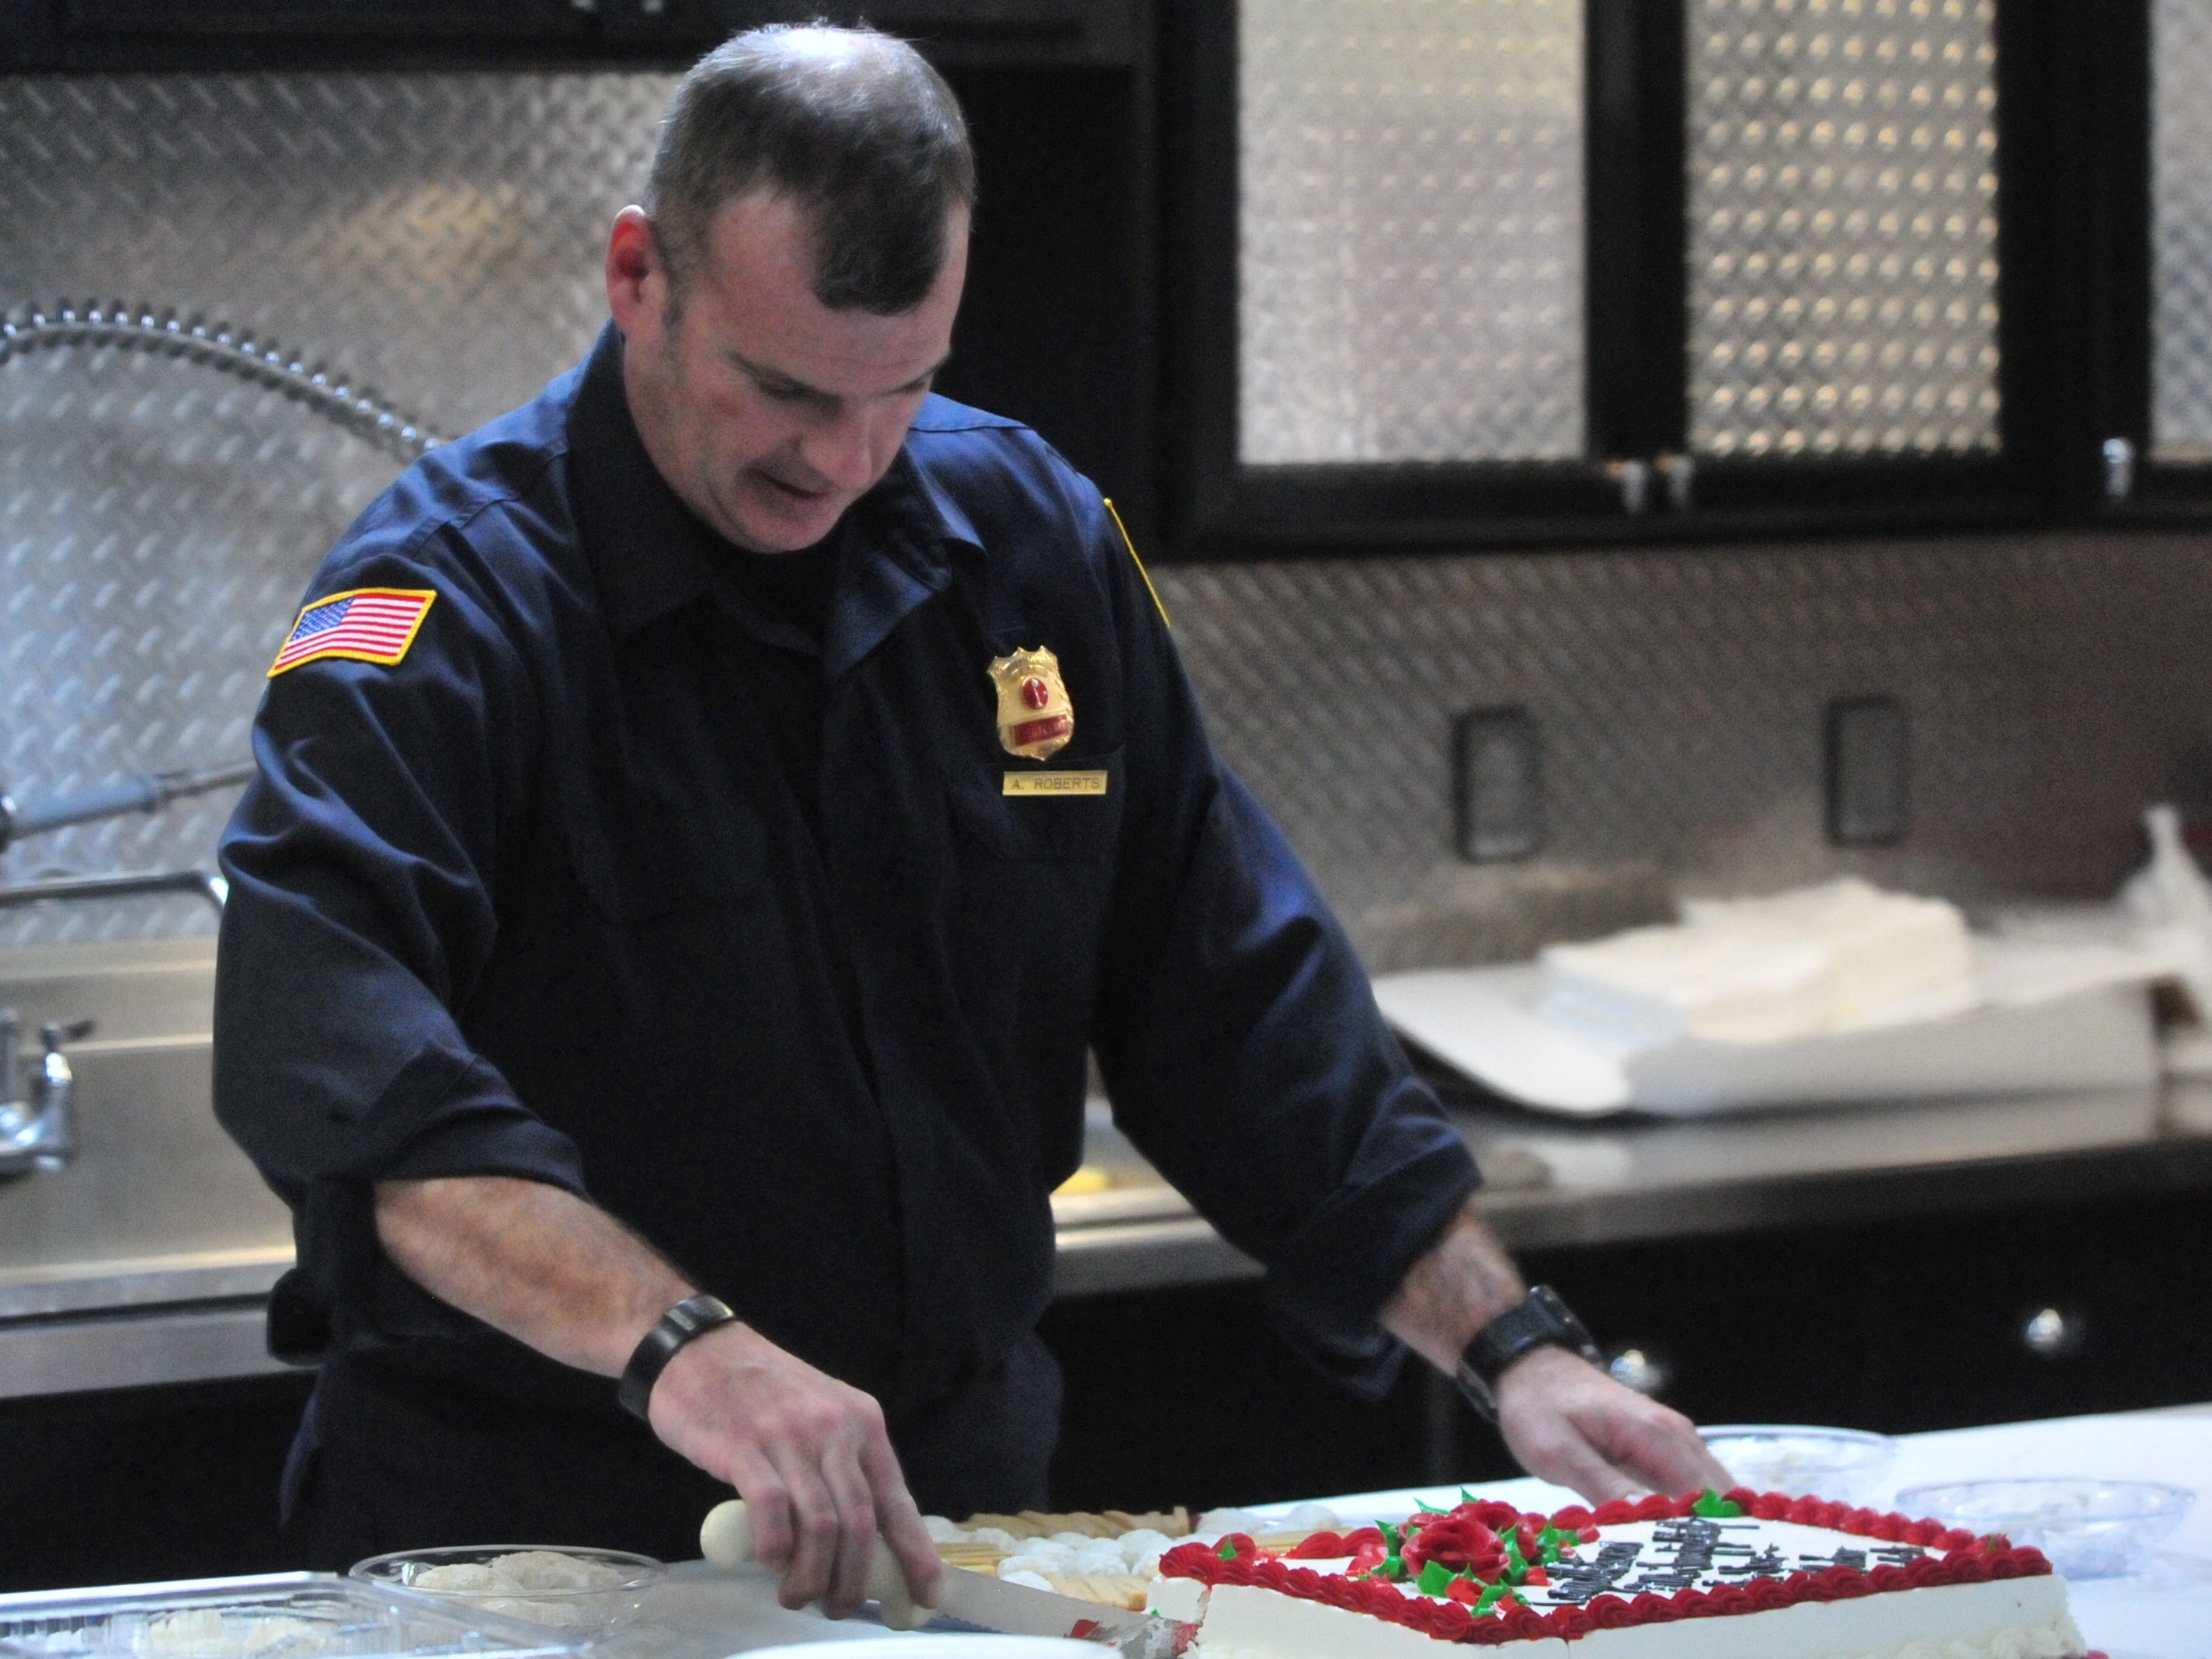 Lt. Andrew Roberts cuts a cake that honored him as Richmond Fire Department's Firefighter of the Year for 2018.